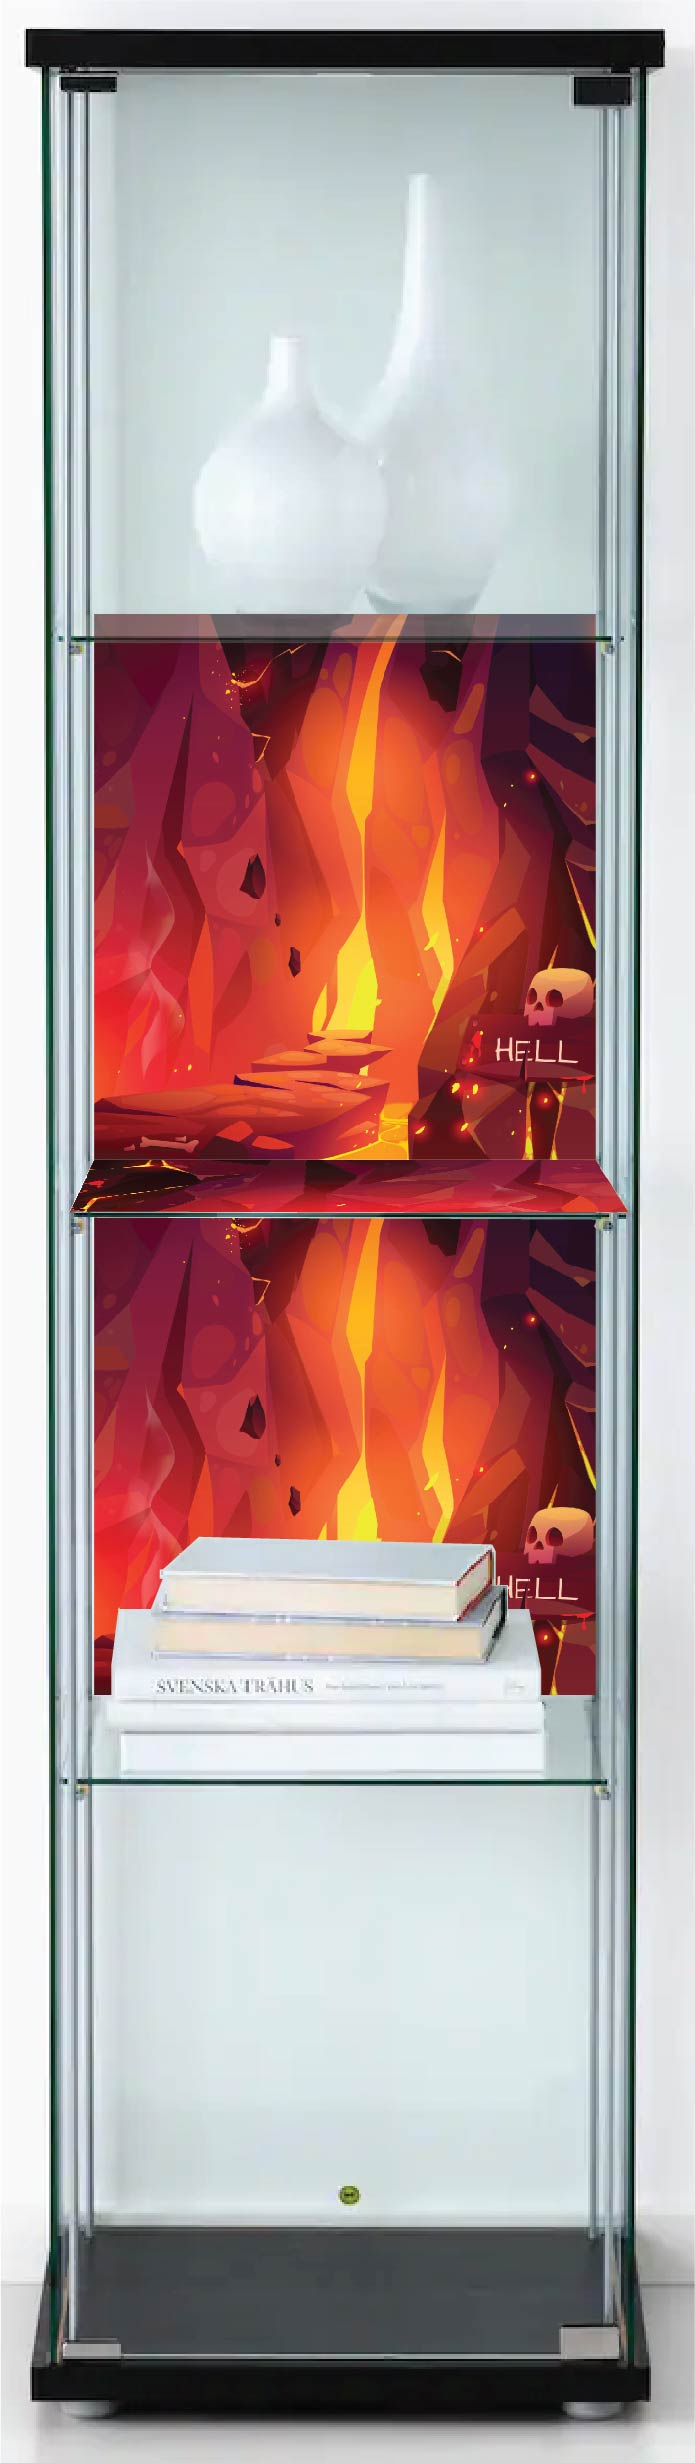 Hell - Background